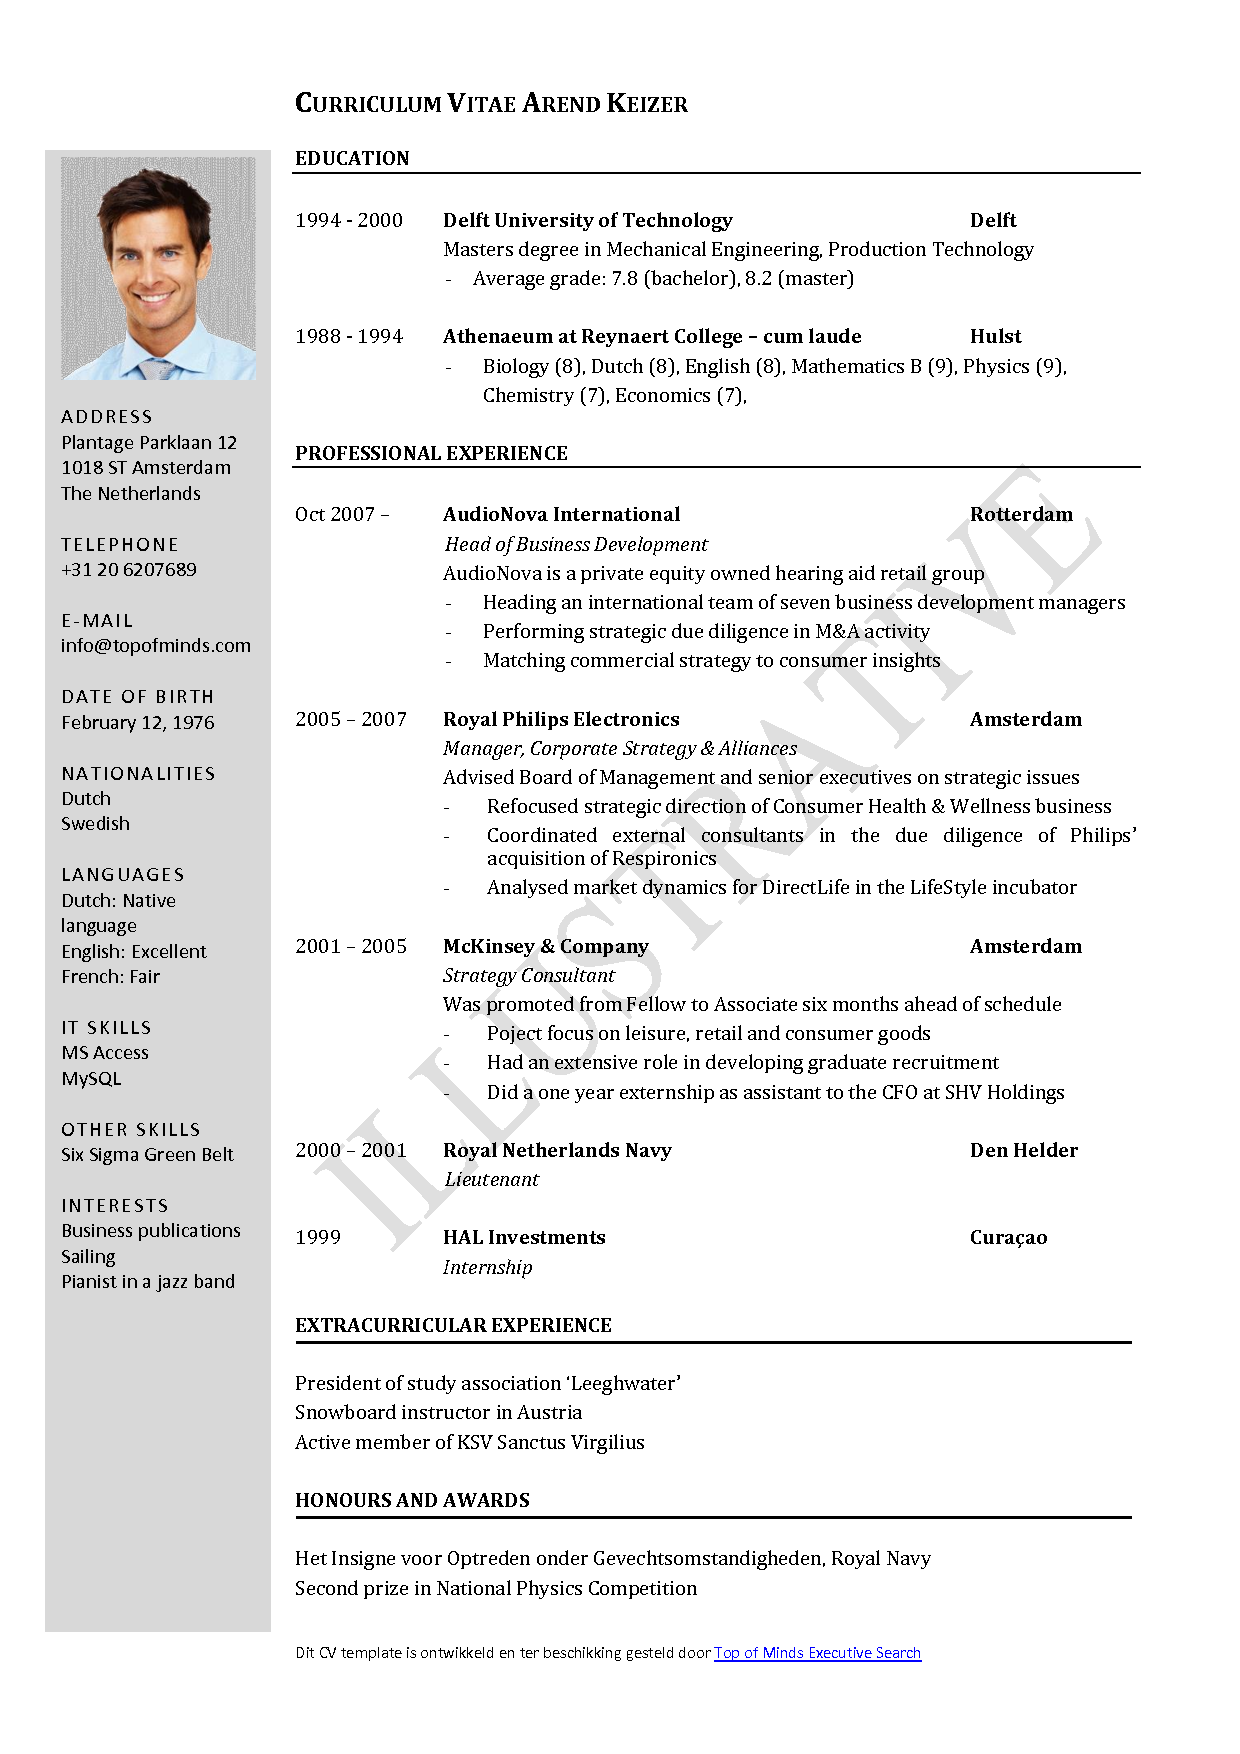 free curriculum vitae template word download cv template With cv free download